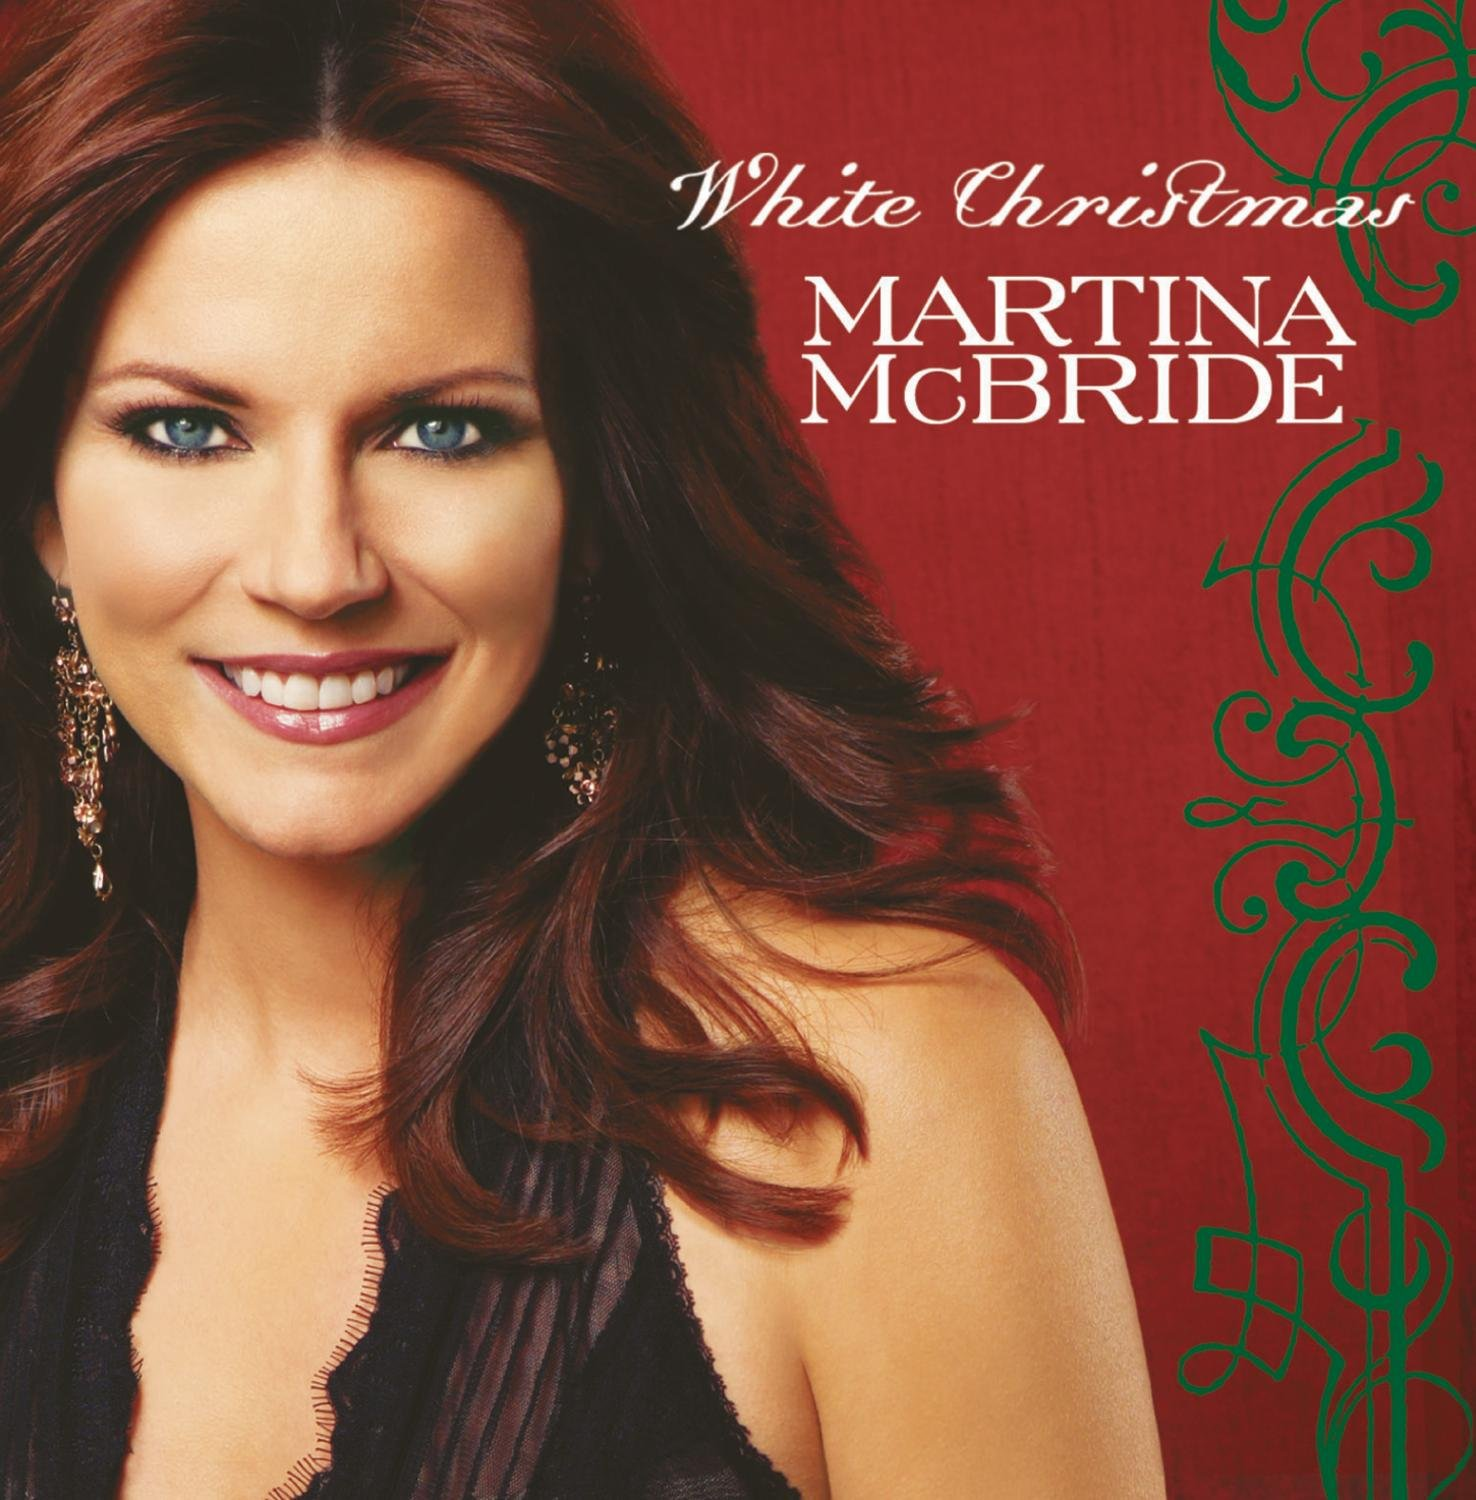 martina mcbride white christmas amazoncom music - What Is A White Christmas